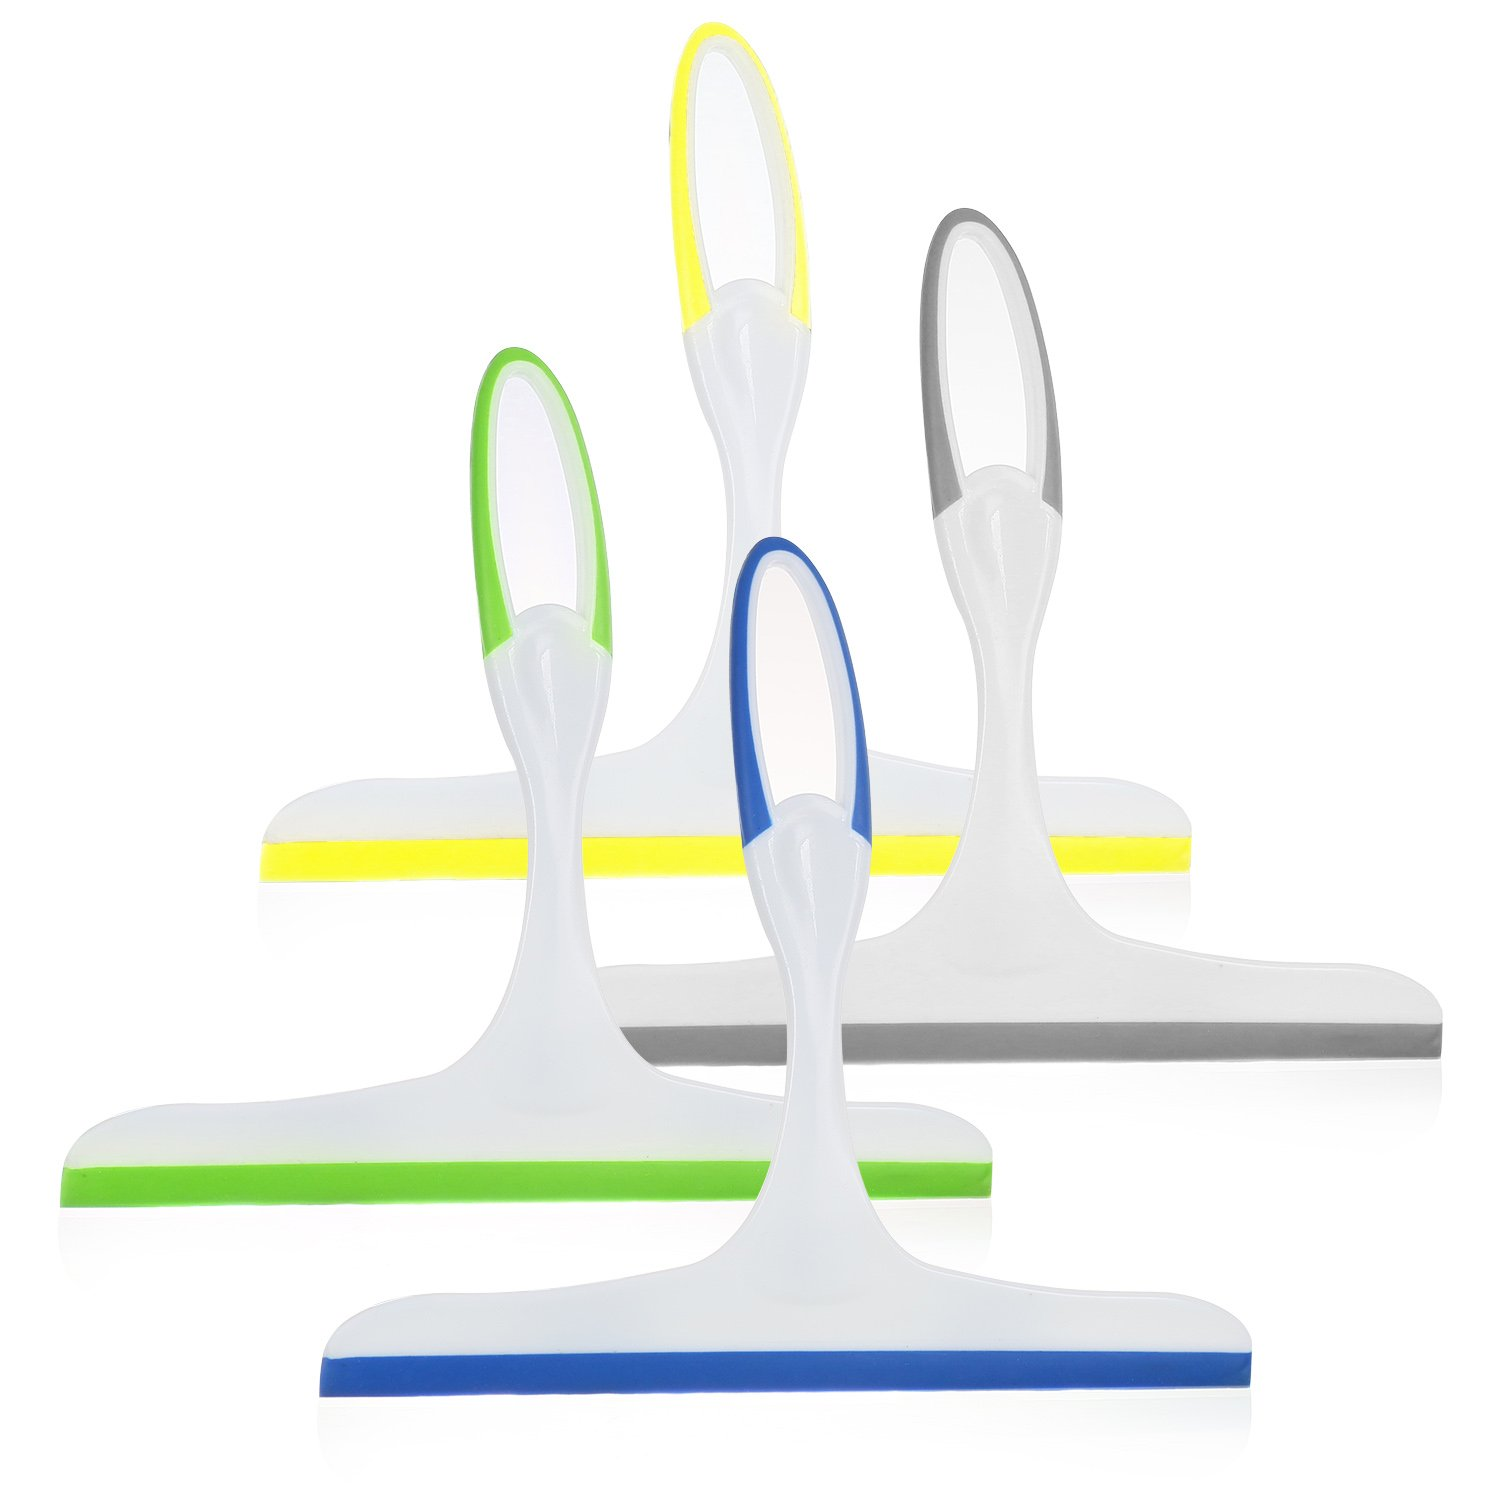 Rubber Squeegees Pack Of 4: Streak-Free Handheld Squeegee Cleaner With 9.5'' Silicone Blade & Hanging Hole - Wiper Cleaning Tool For Washing Shower Door, Bathroom, Kitchen, Glass, Car Windshield And Ou